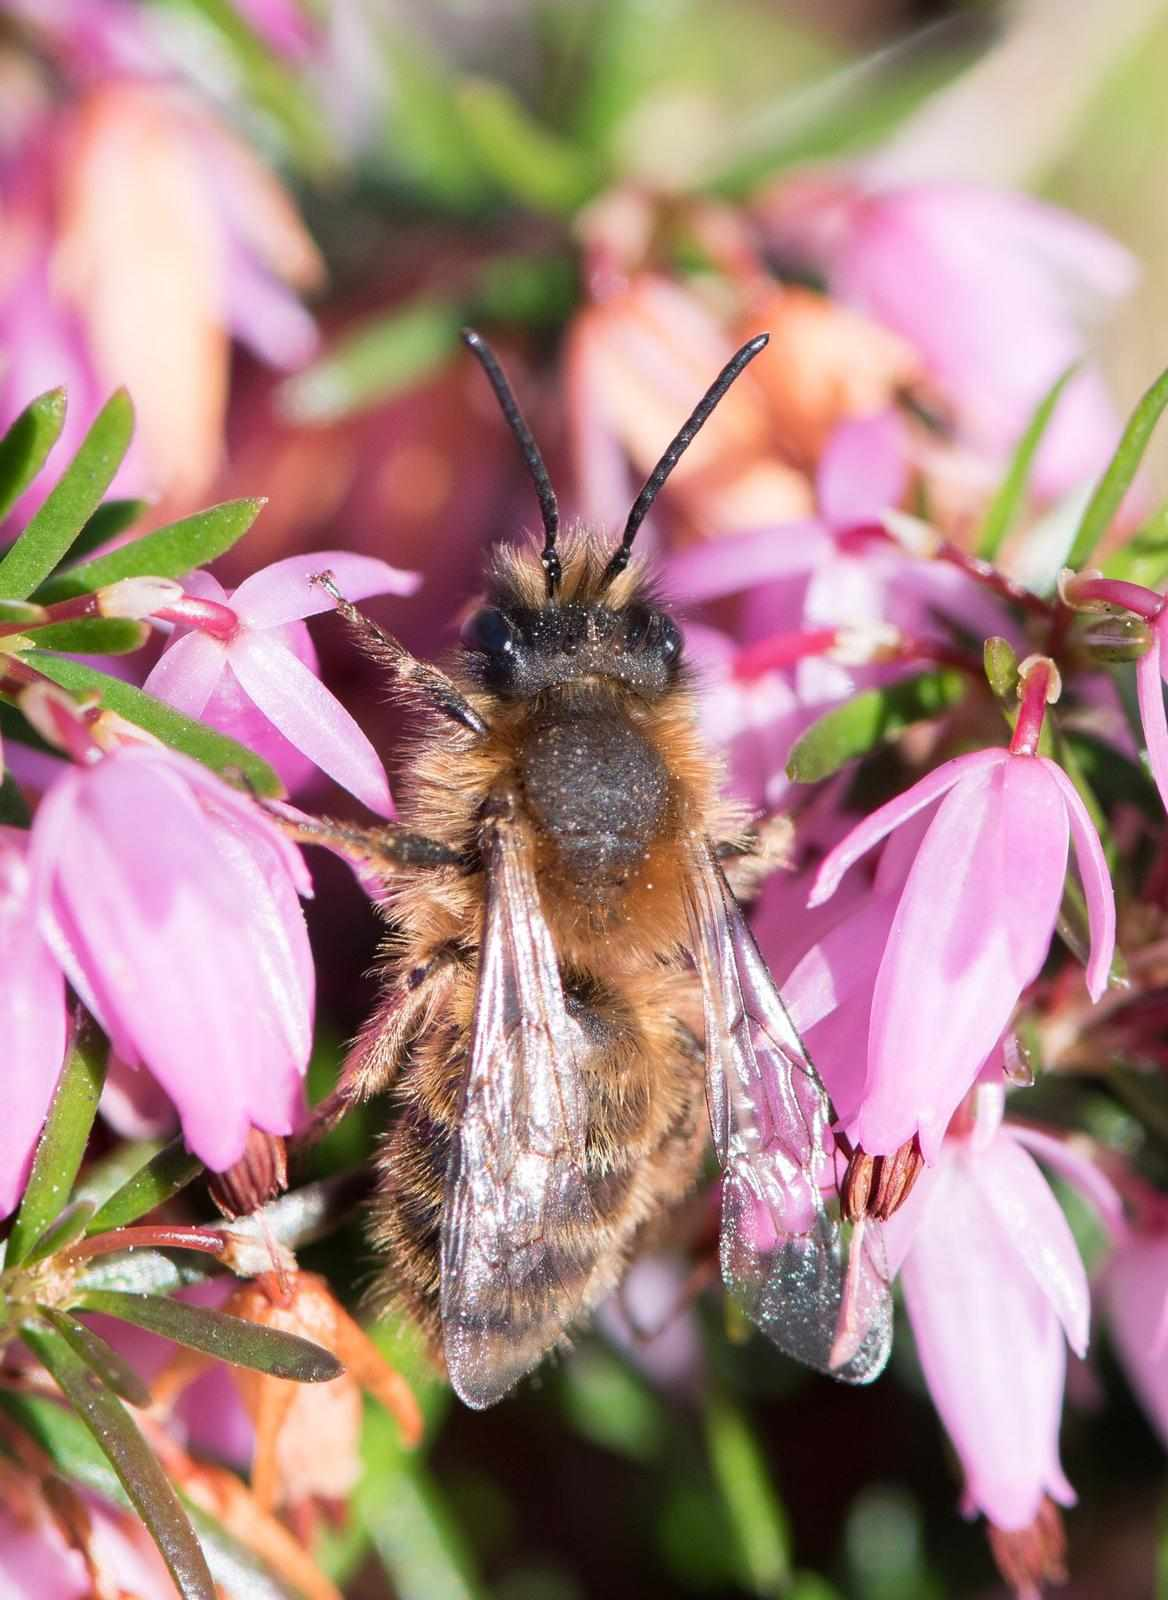 Male tawny minor bee